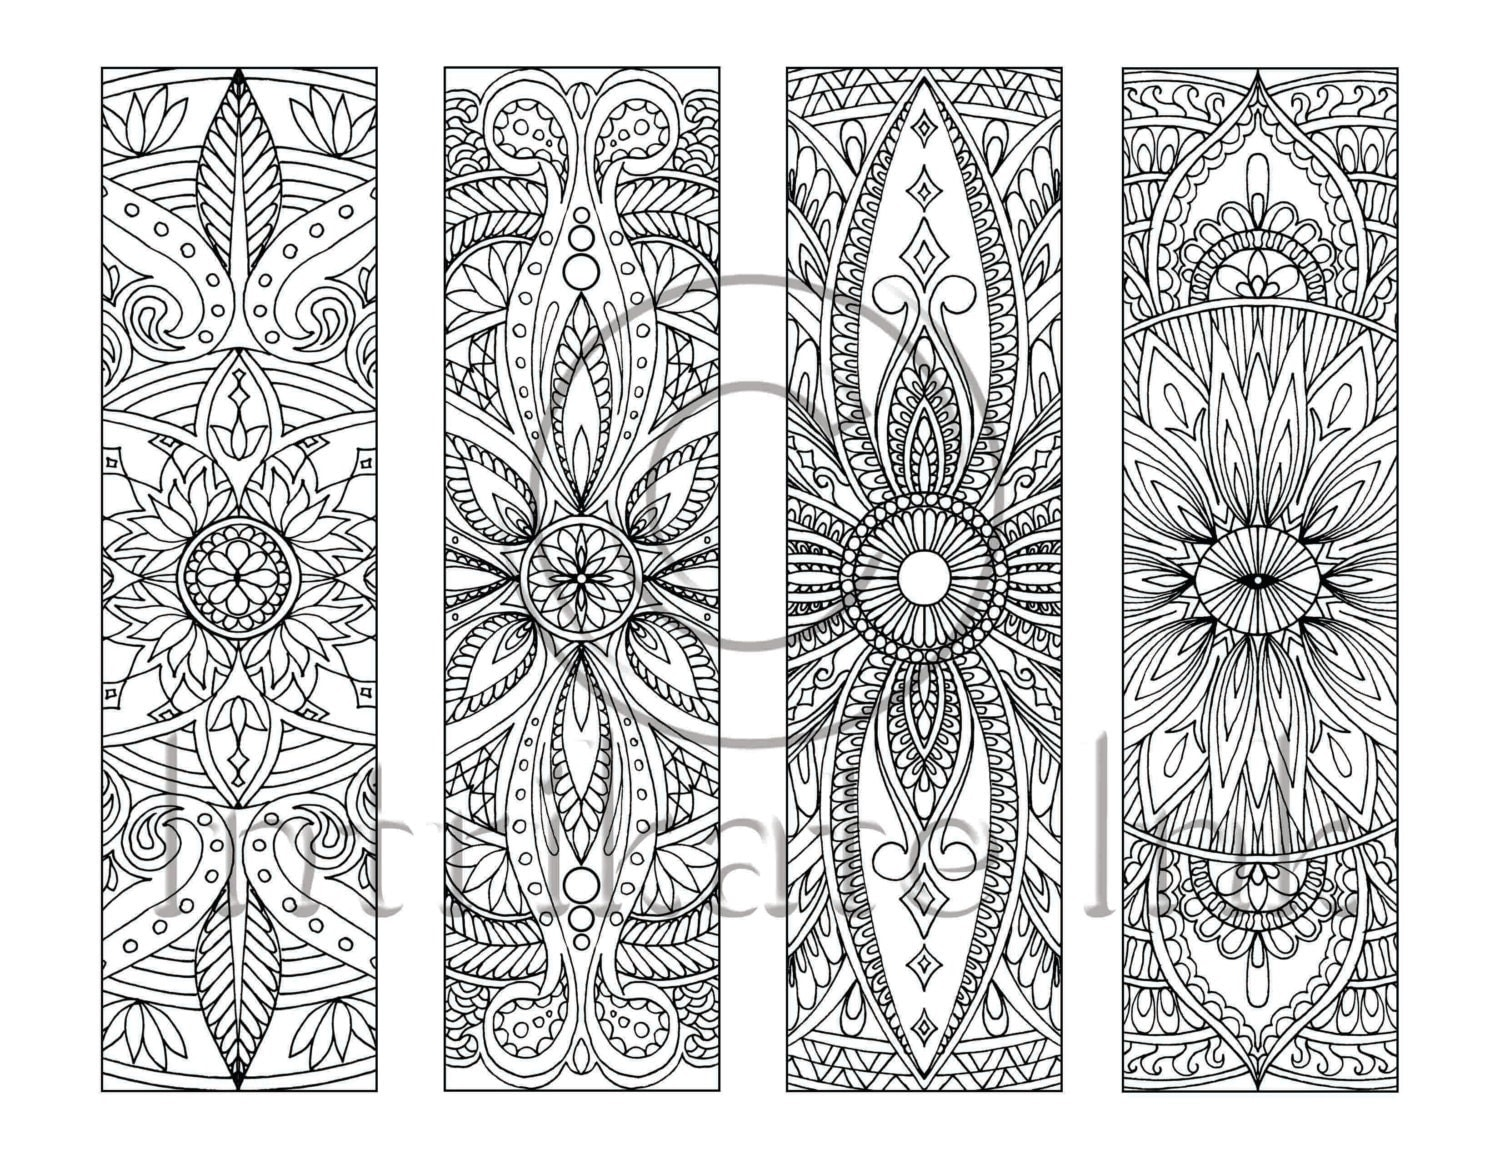 coloring pages bookmarks - photo#23